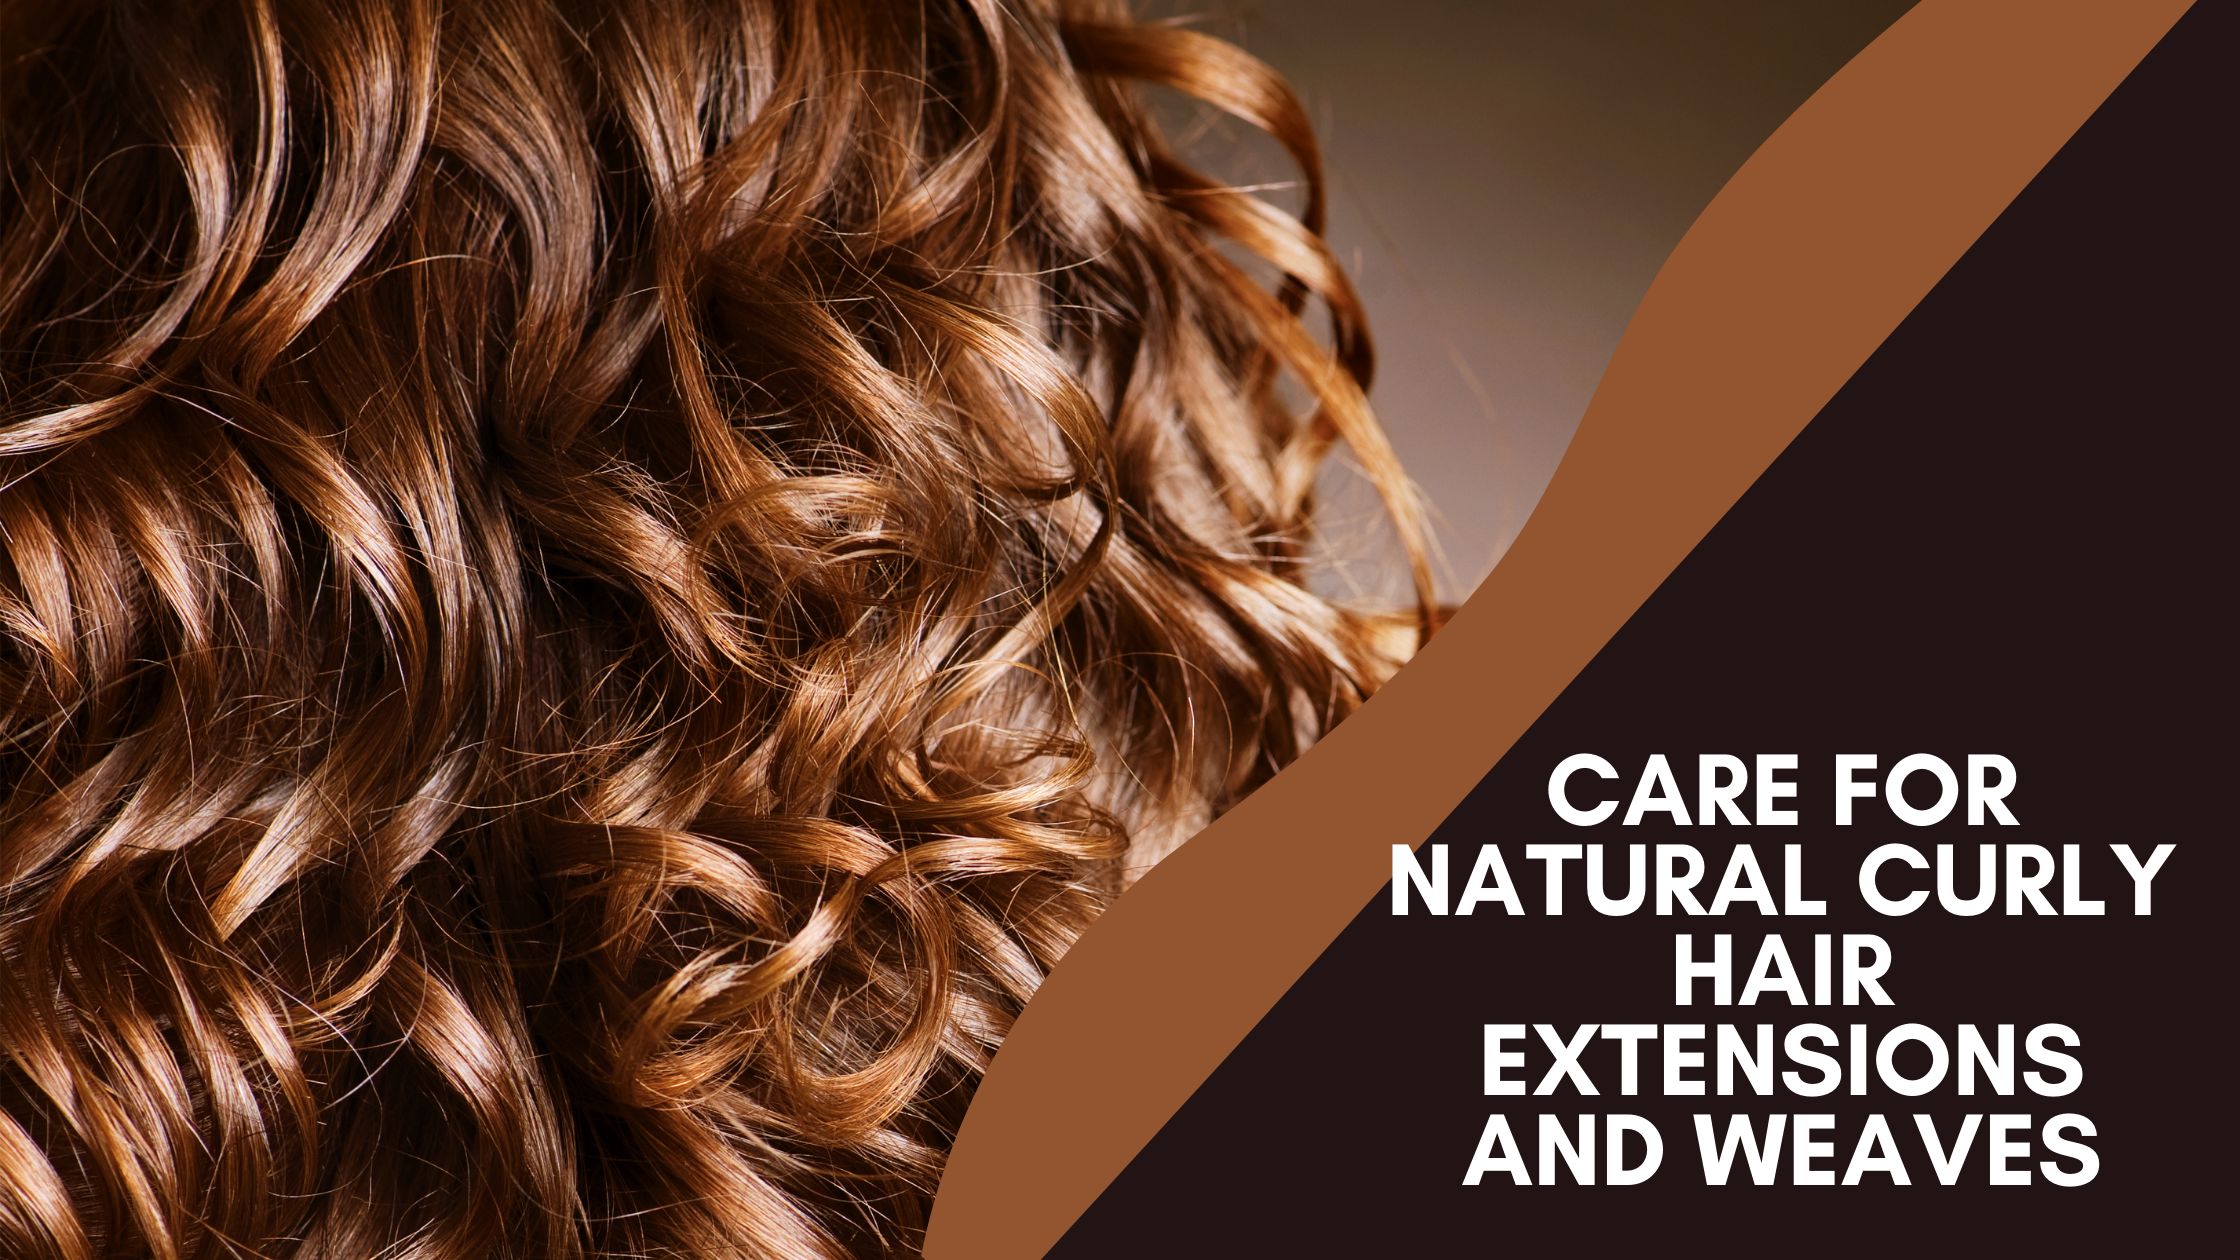 Care for Natural Curly Hair Extensions and Weaves